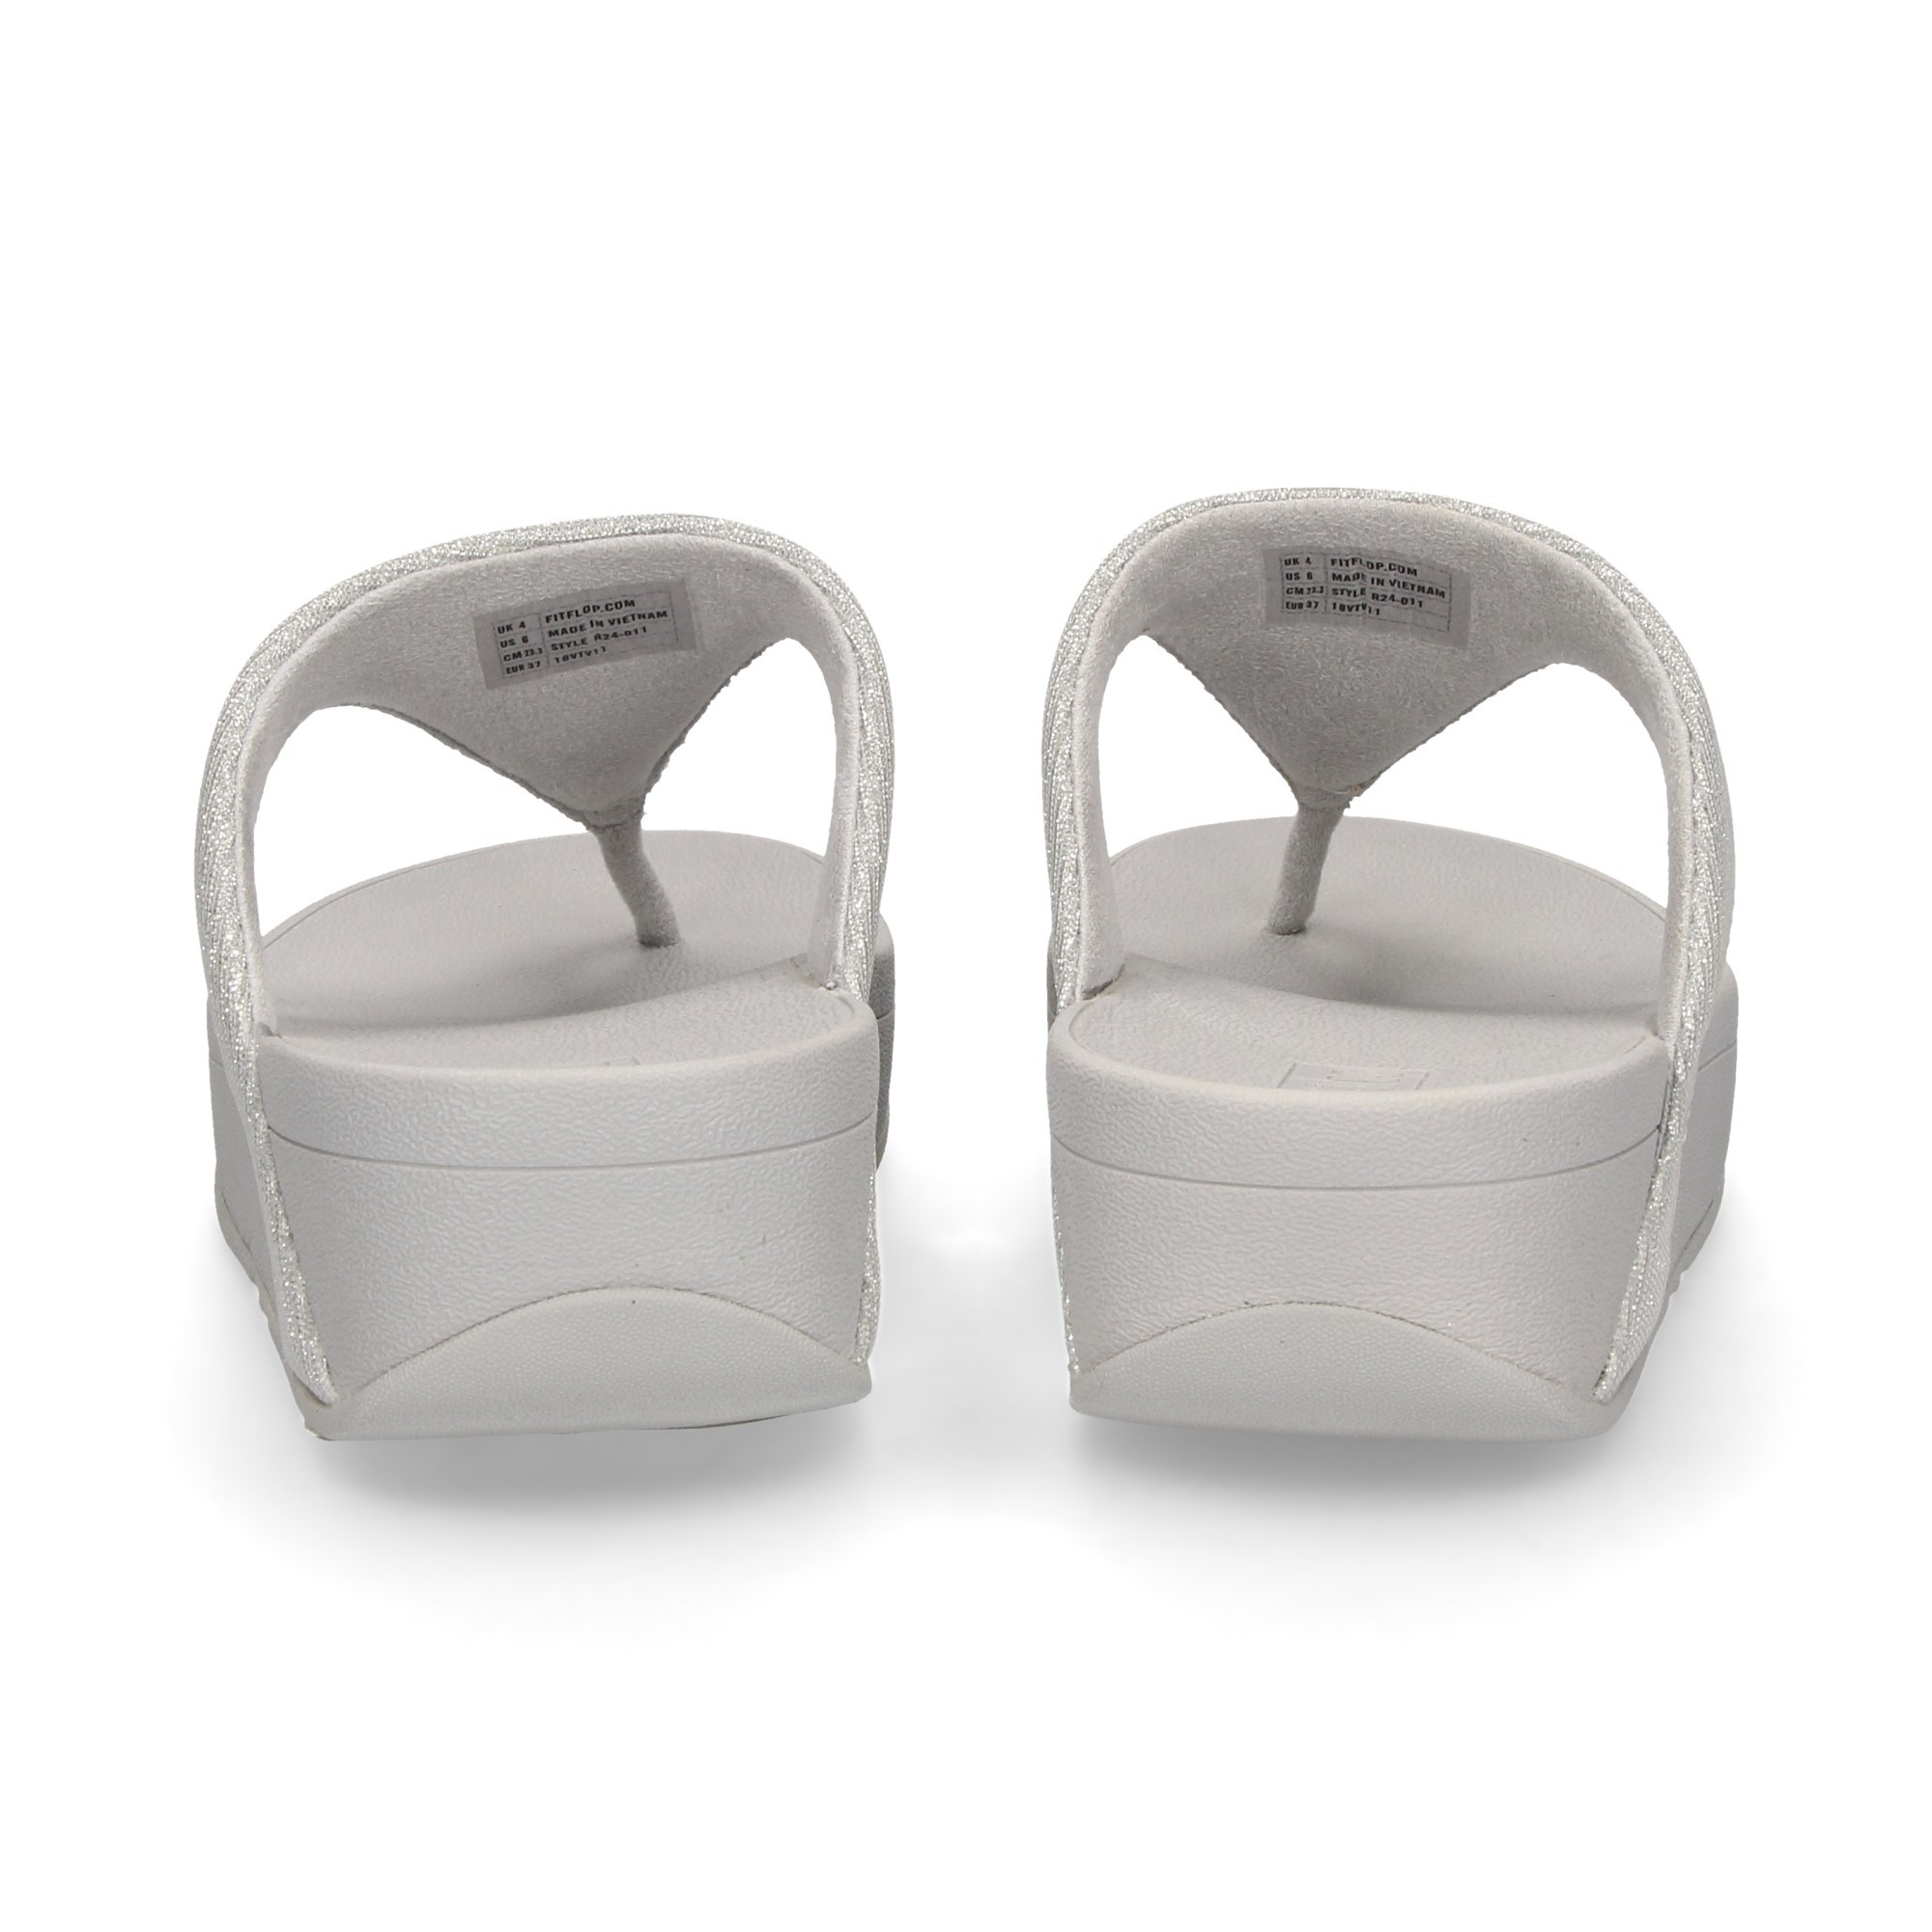 Fitflop Women S Wedge Sandals R24 Silver 011